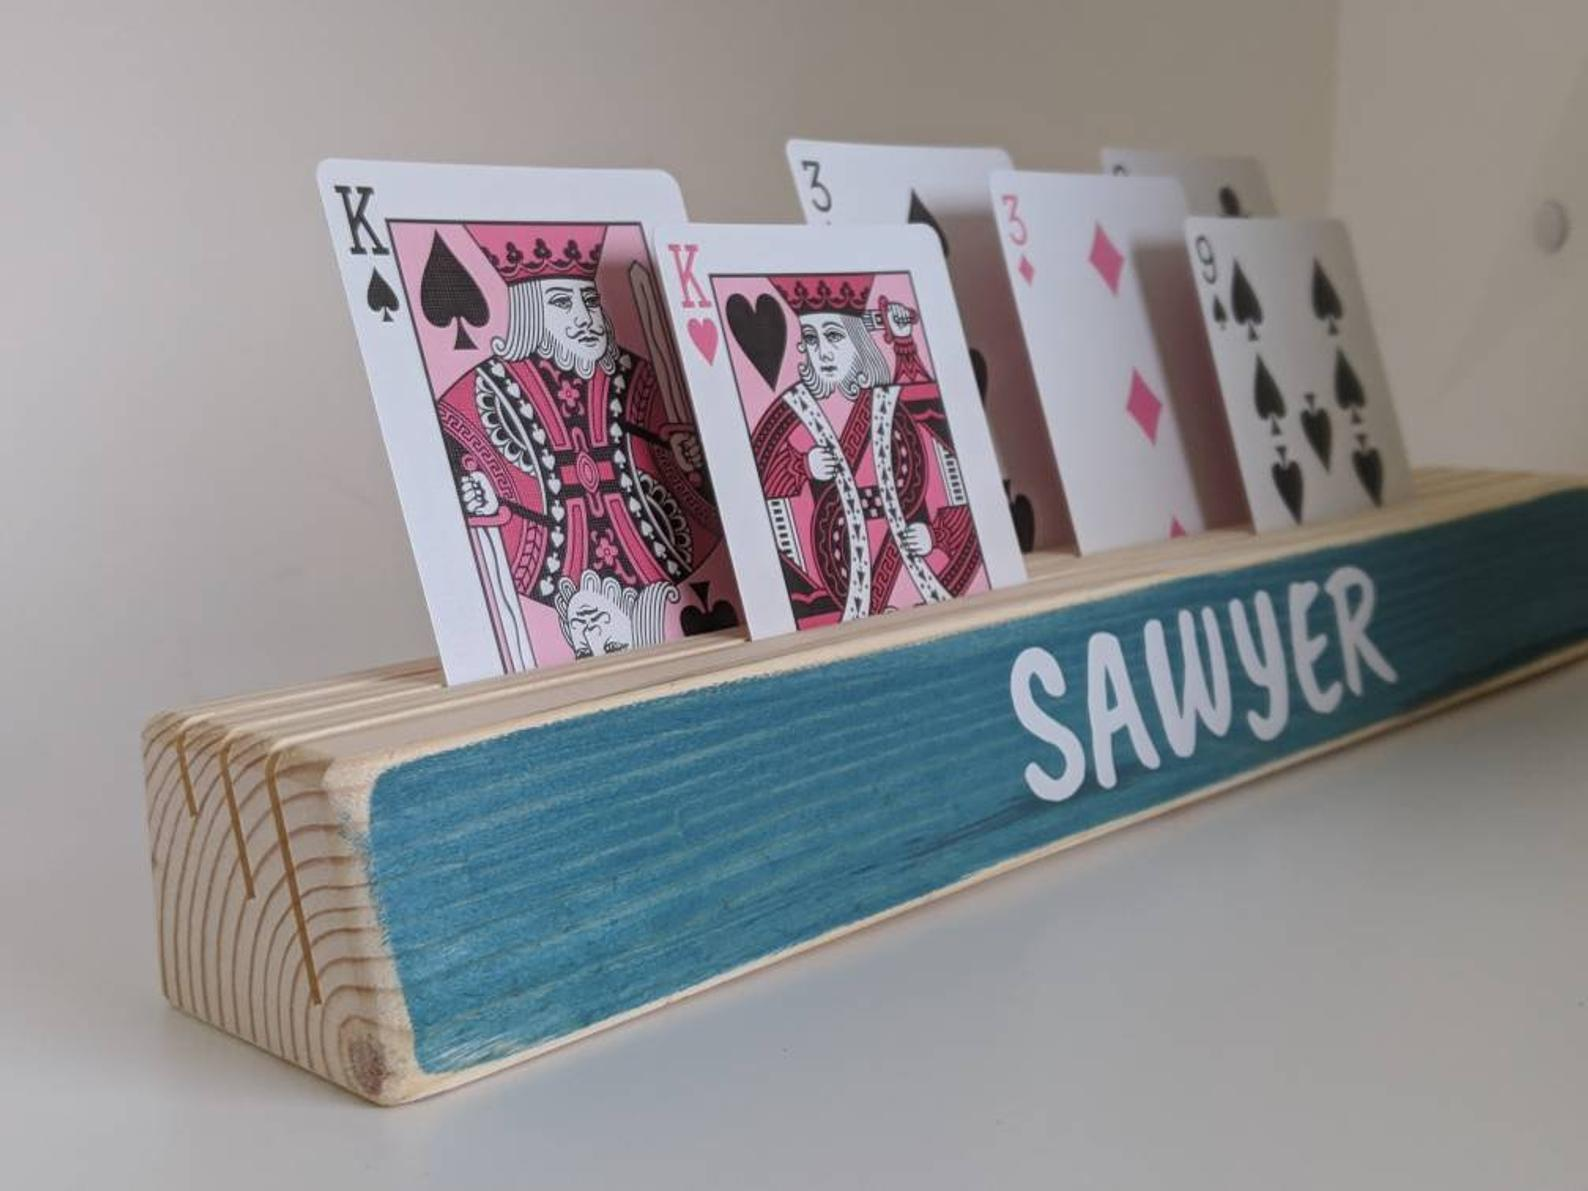 Wooden card holder. Image credit: SpeakeDesigns on Etsy.